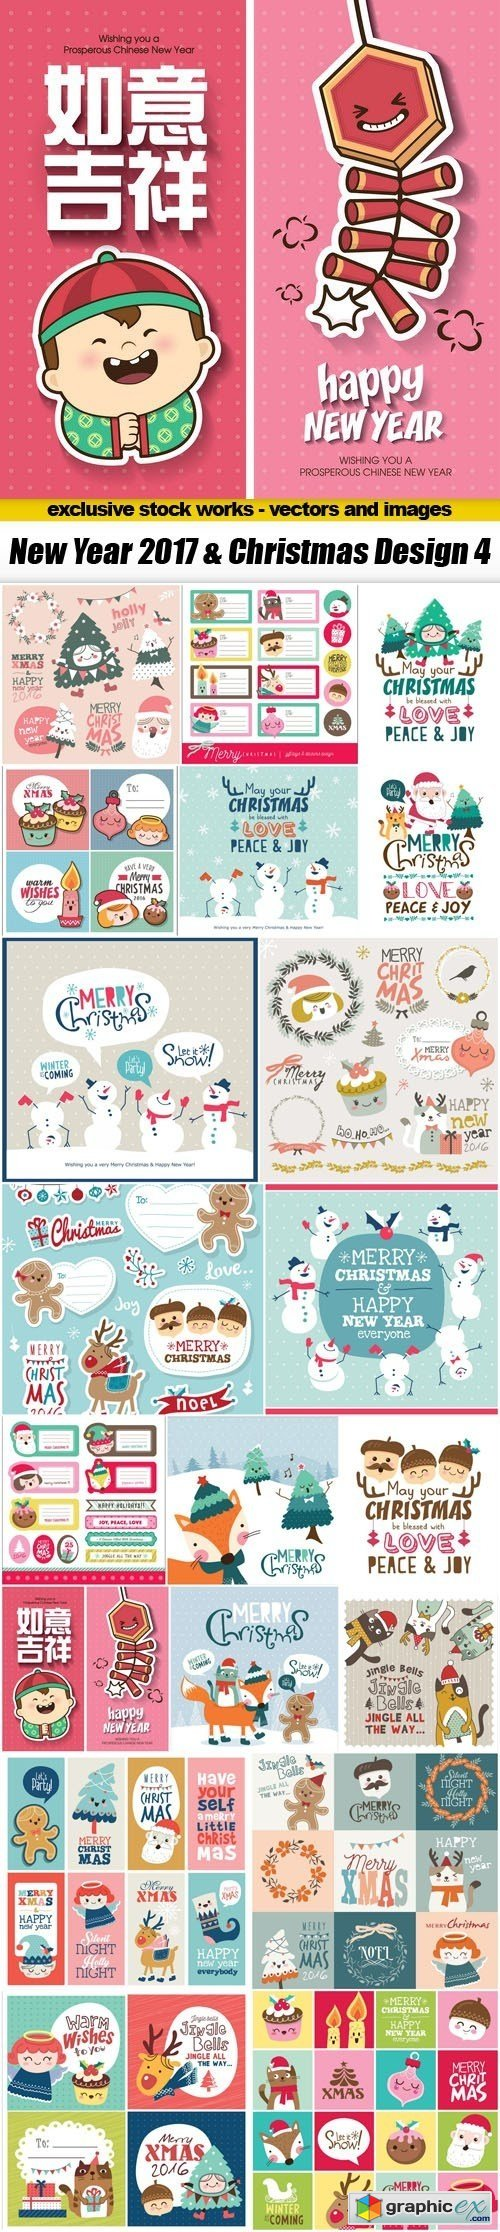 New Year 2017 & Christmas Design 4 - 20xEPS